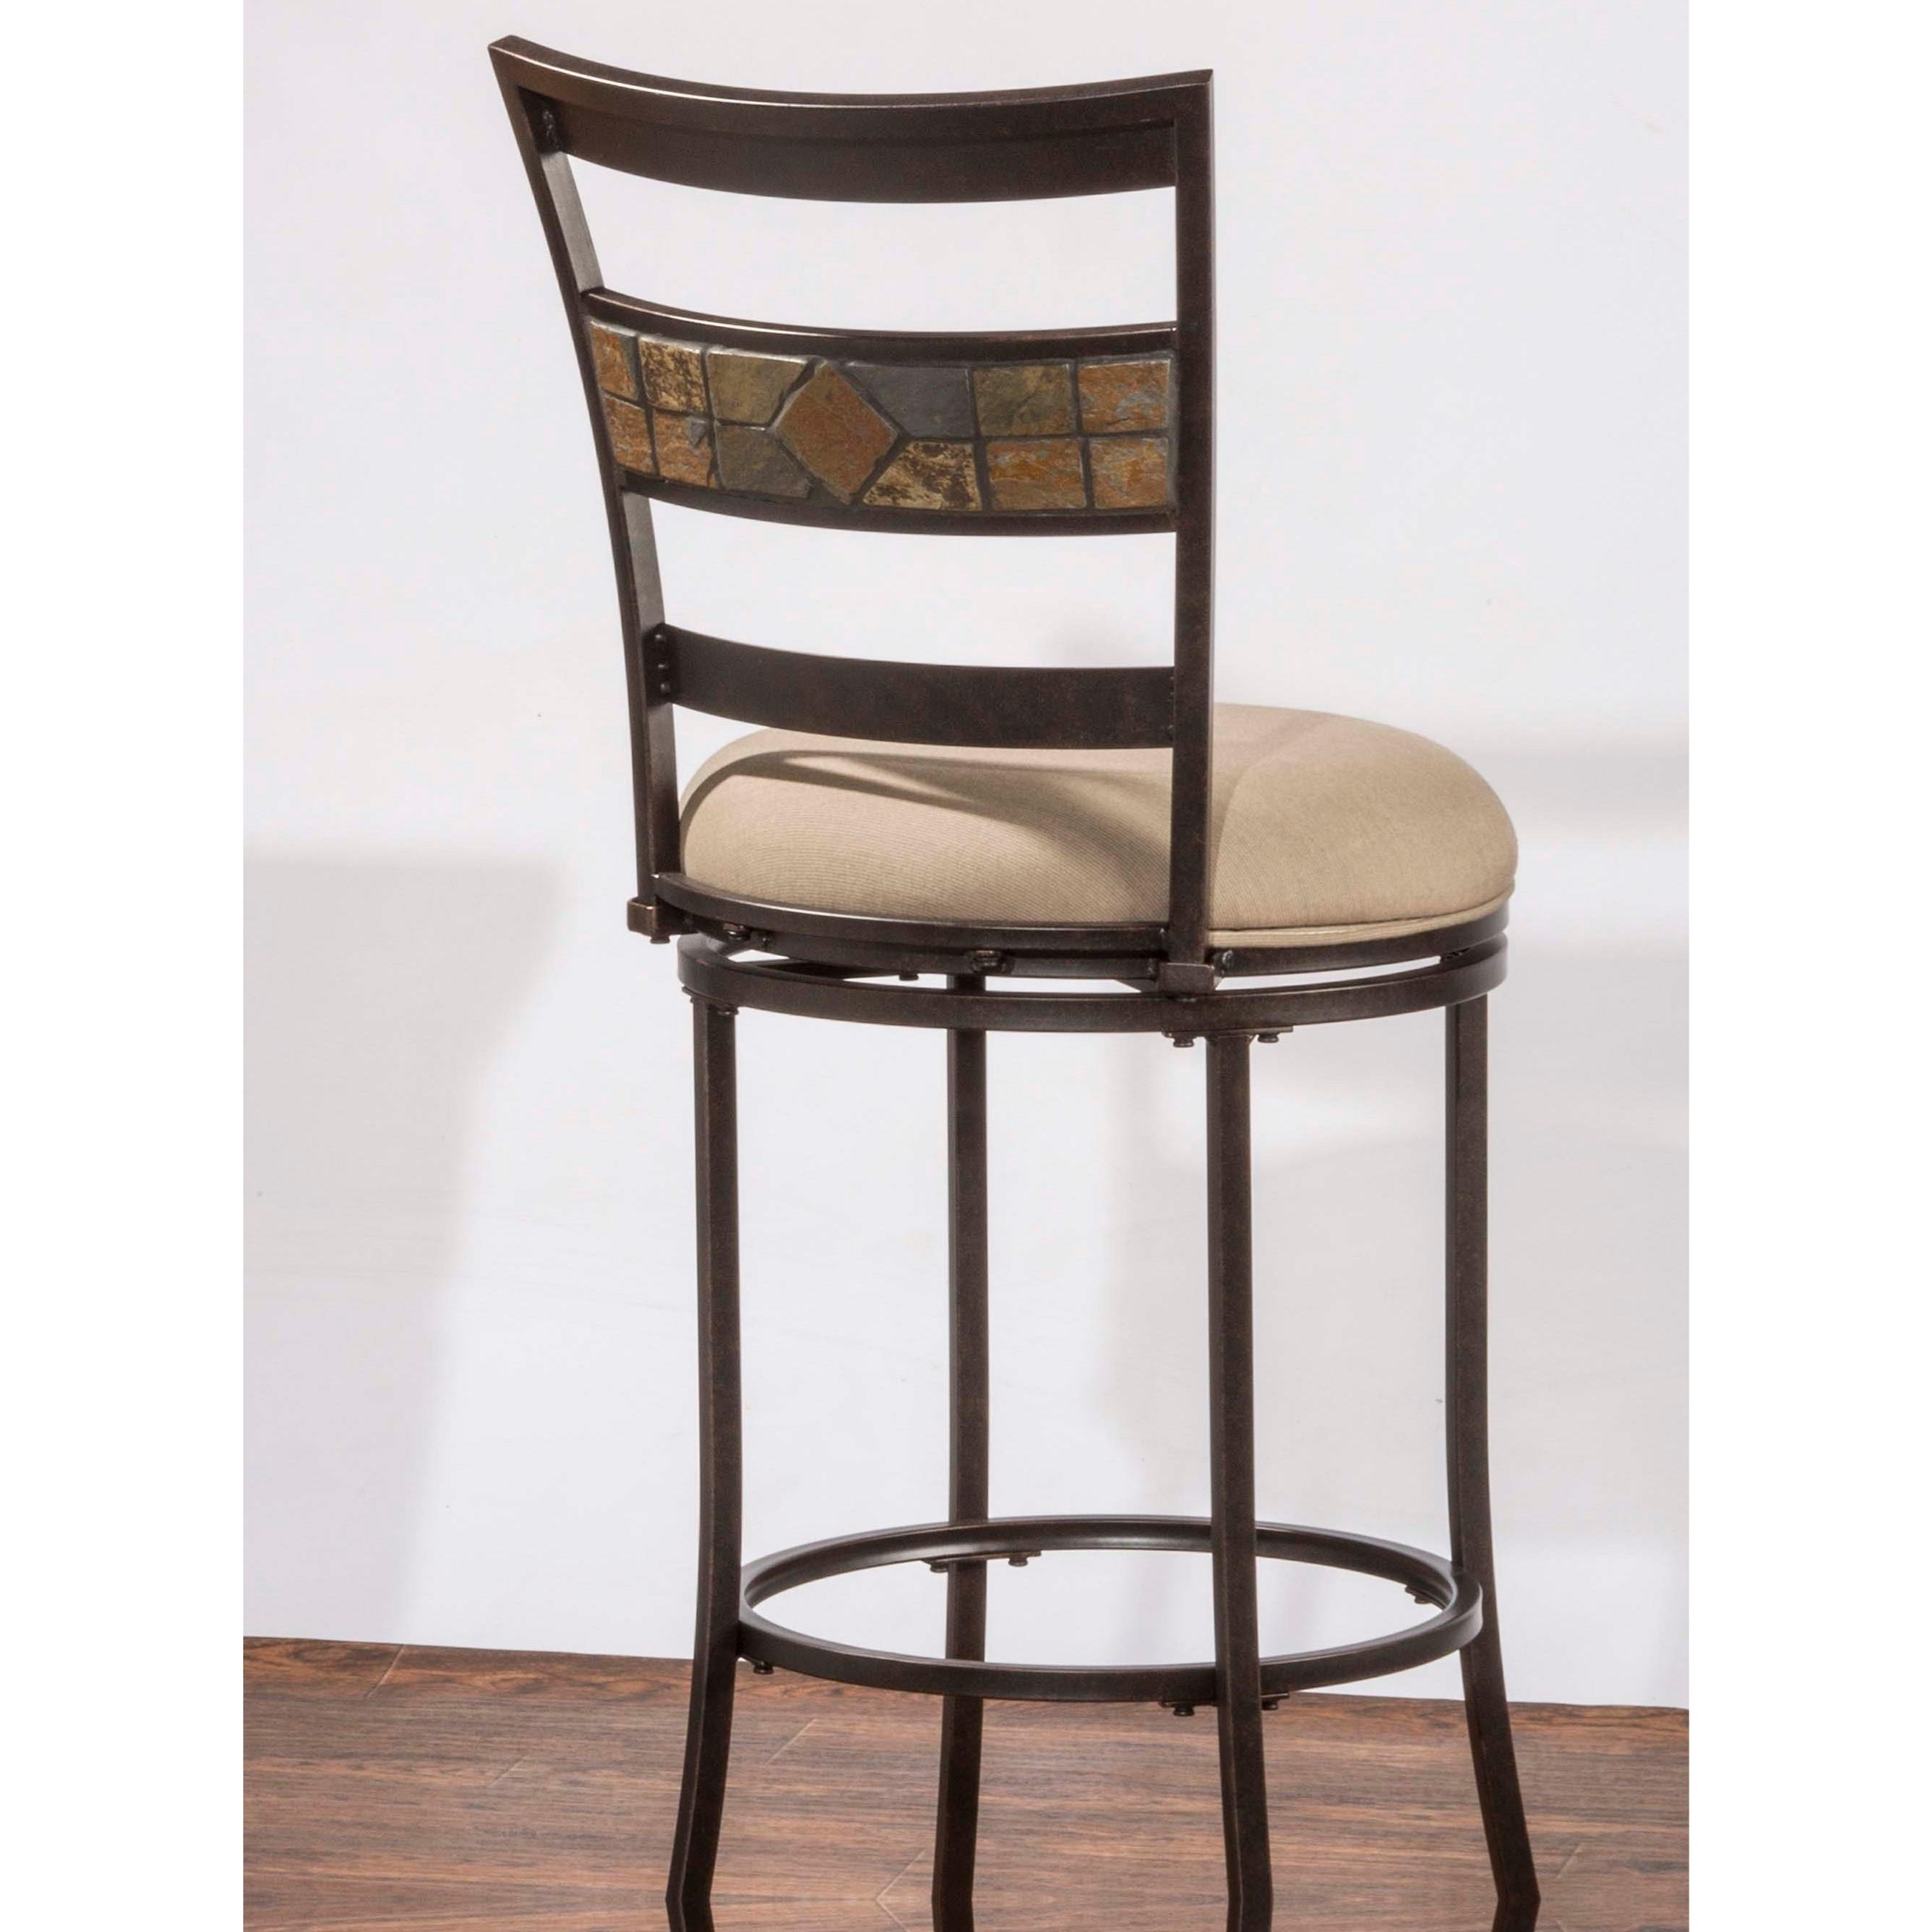 Hillsdale Indoor Outdoor Stools Swivel Counter Stool With